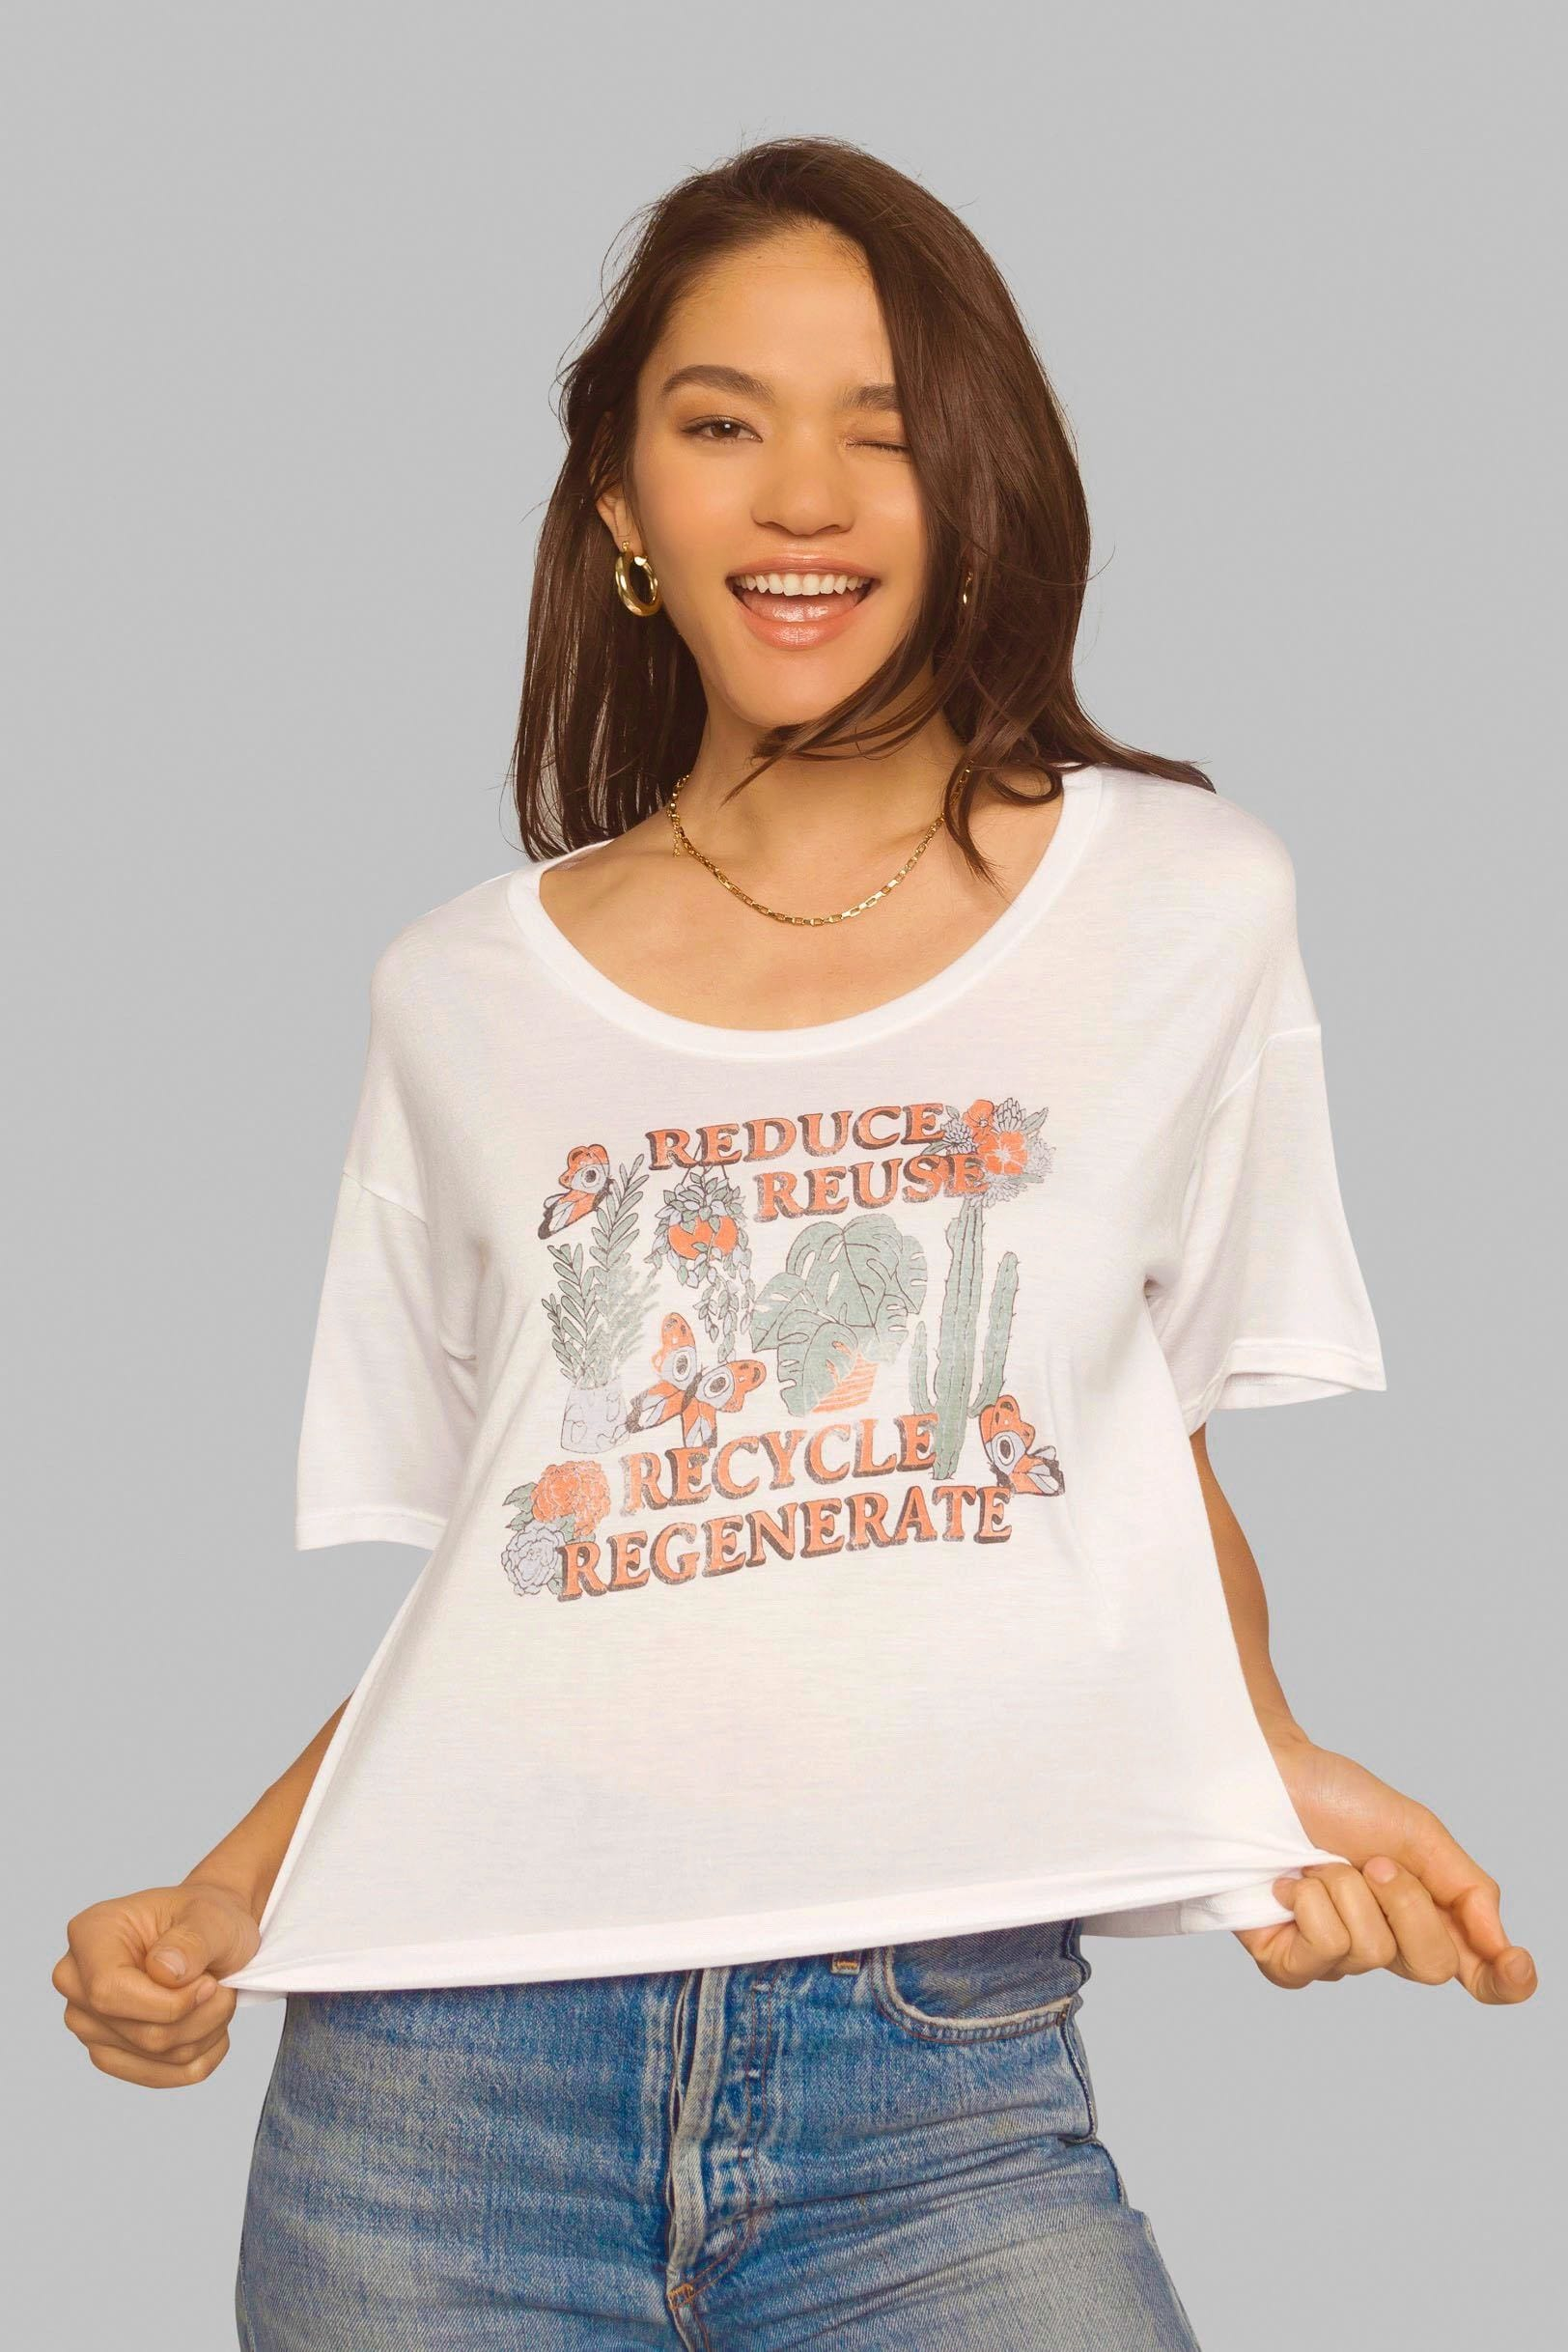 Reduce Reuse Recycle Regenerate Tee